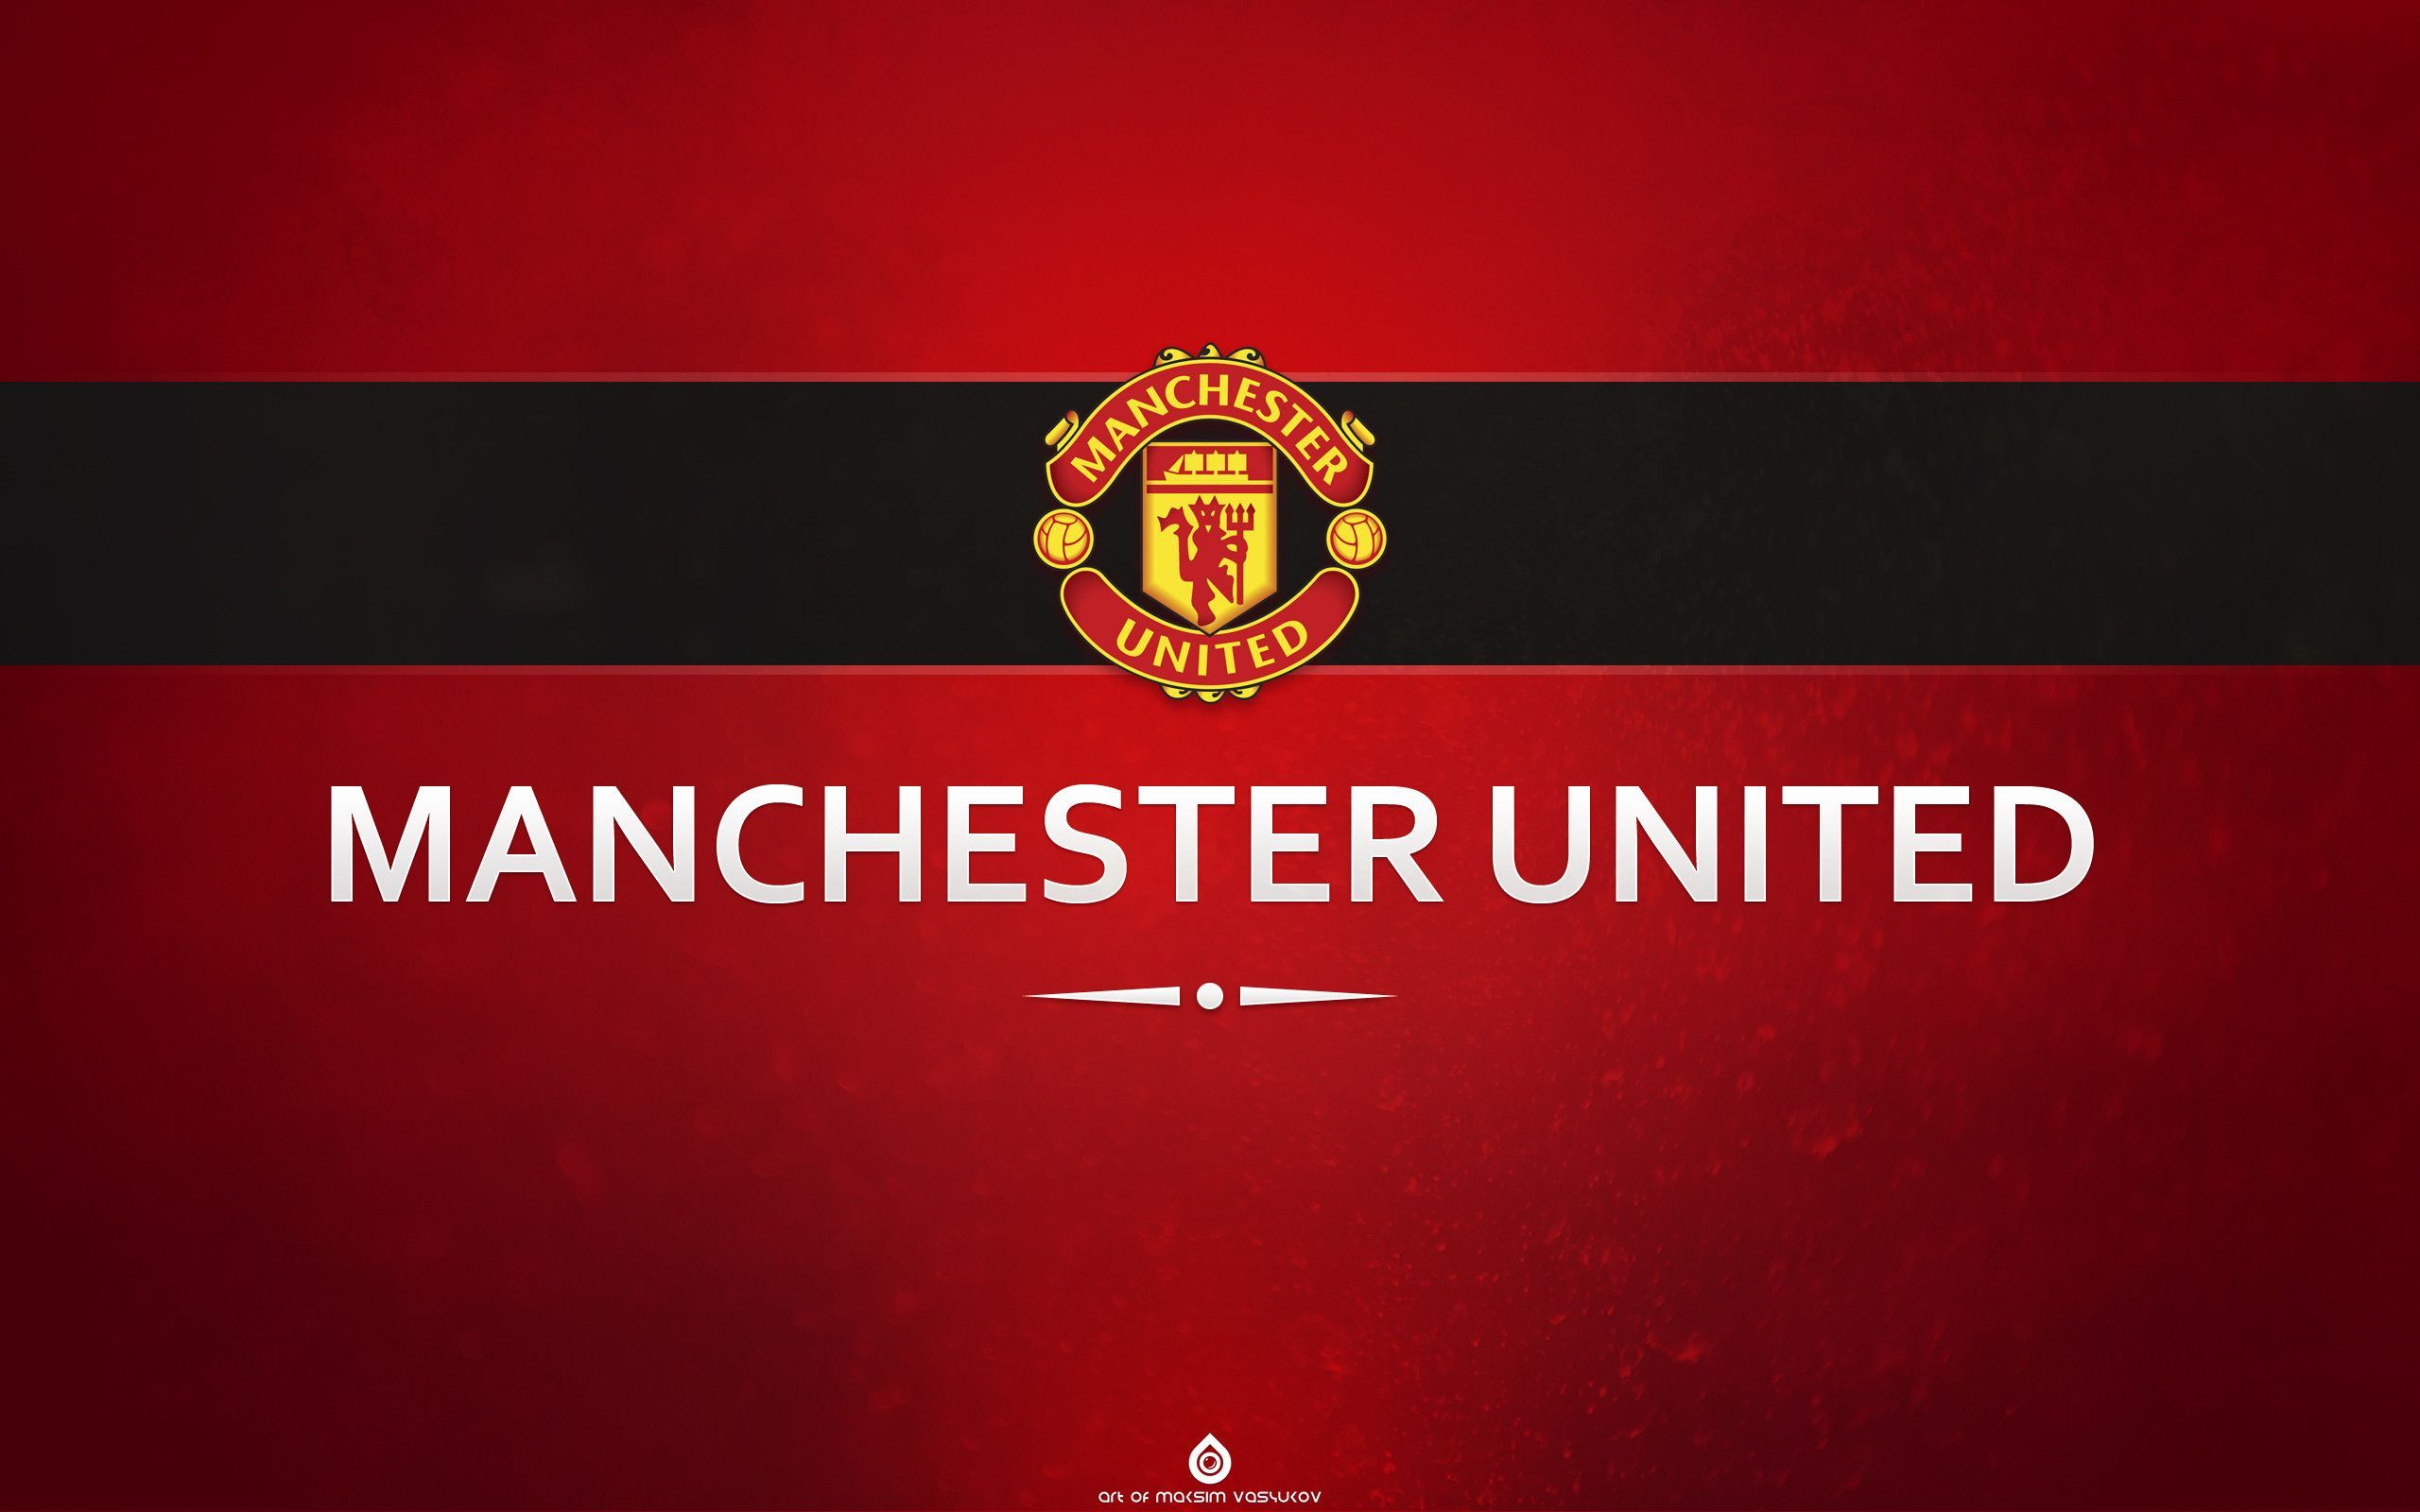 Manchester united logo wallpapers wallpaper cave for Man u bedroom wallpaper